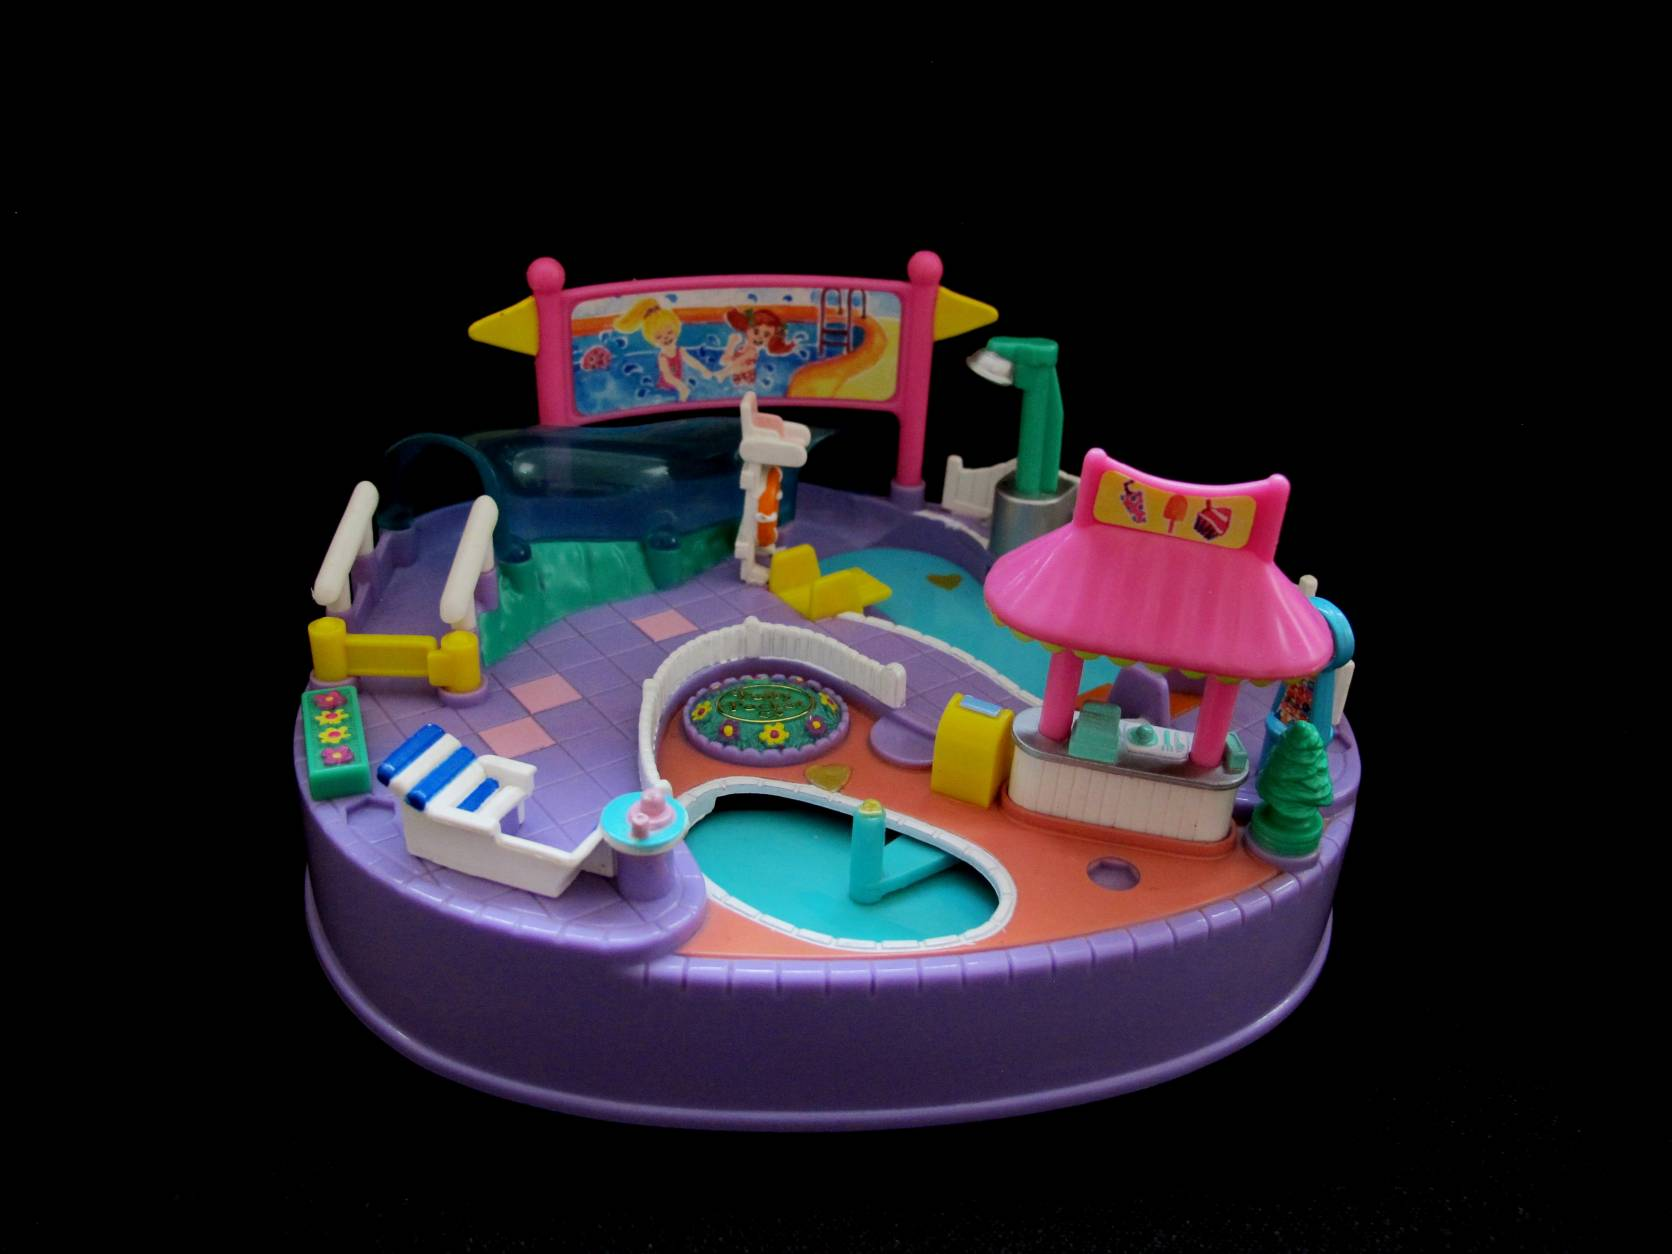 1997 Polly pocket Pool Party Variatie (1)